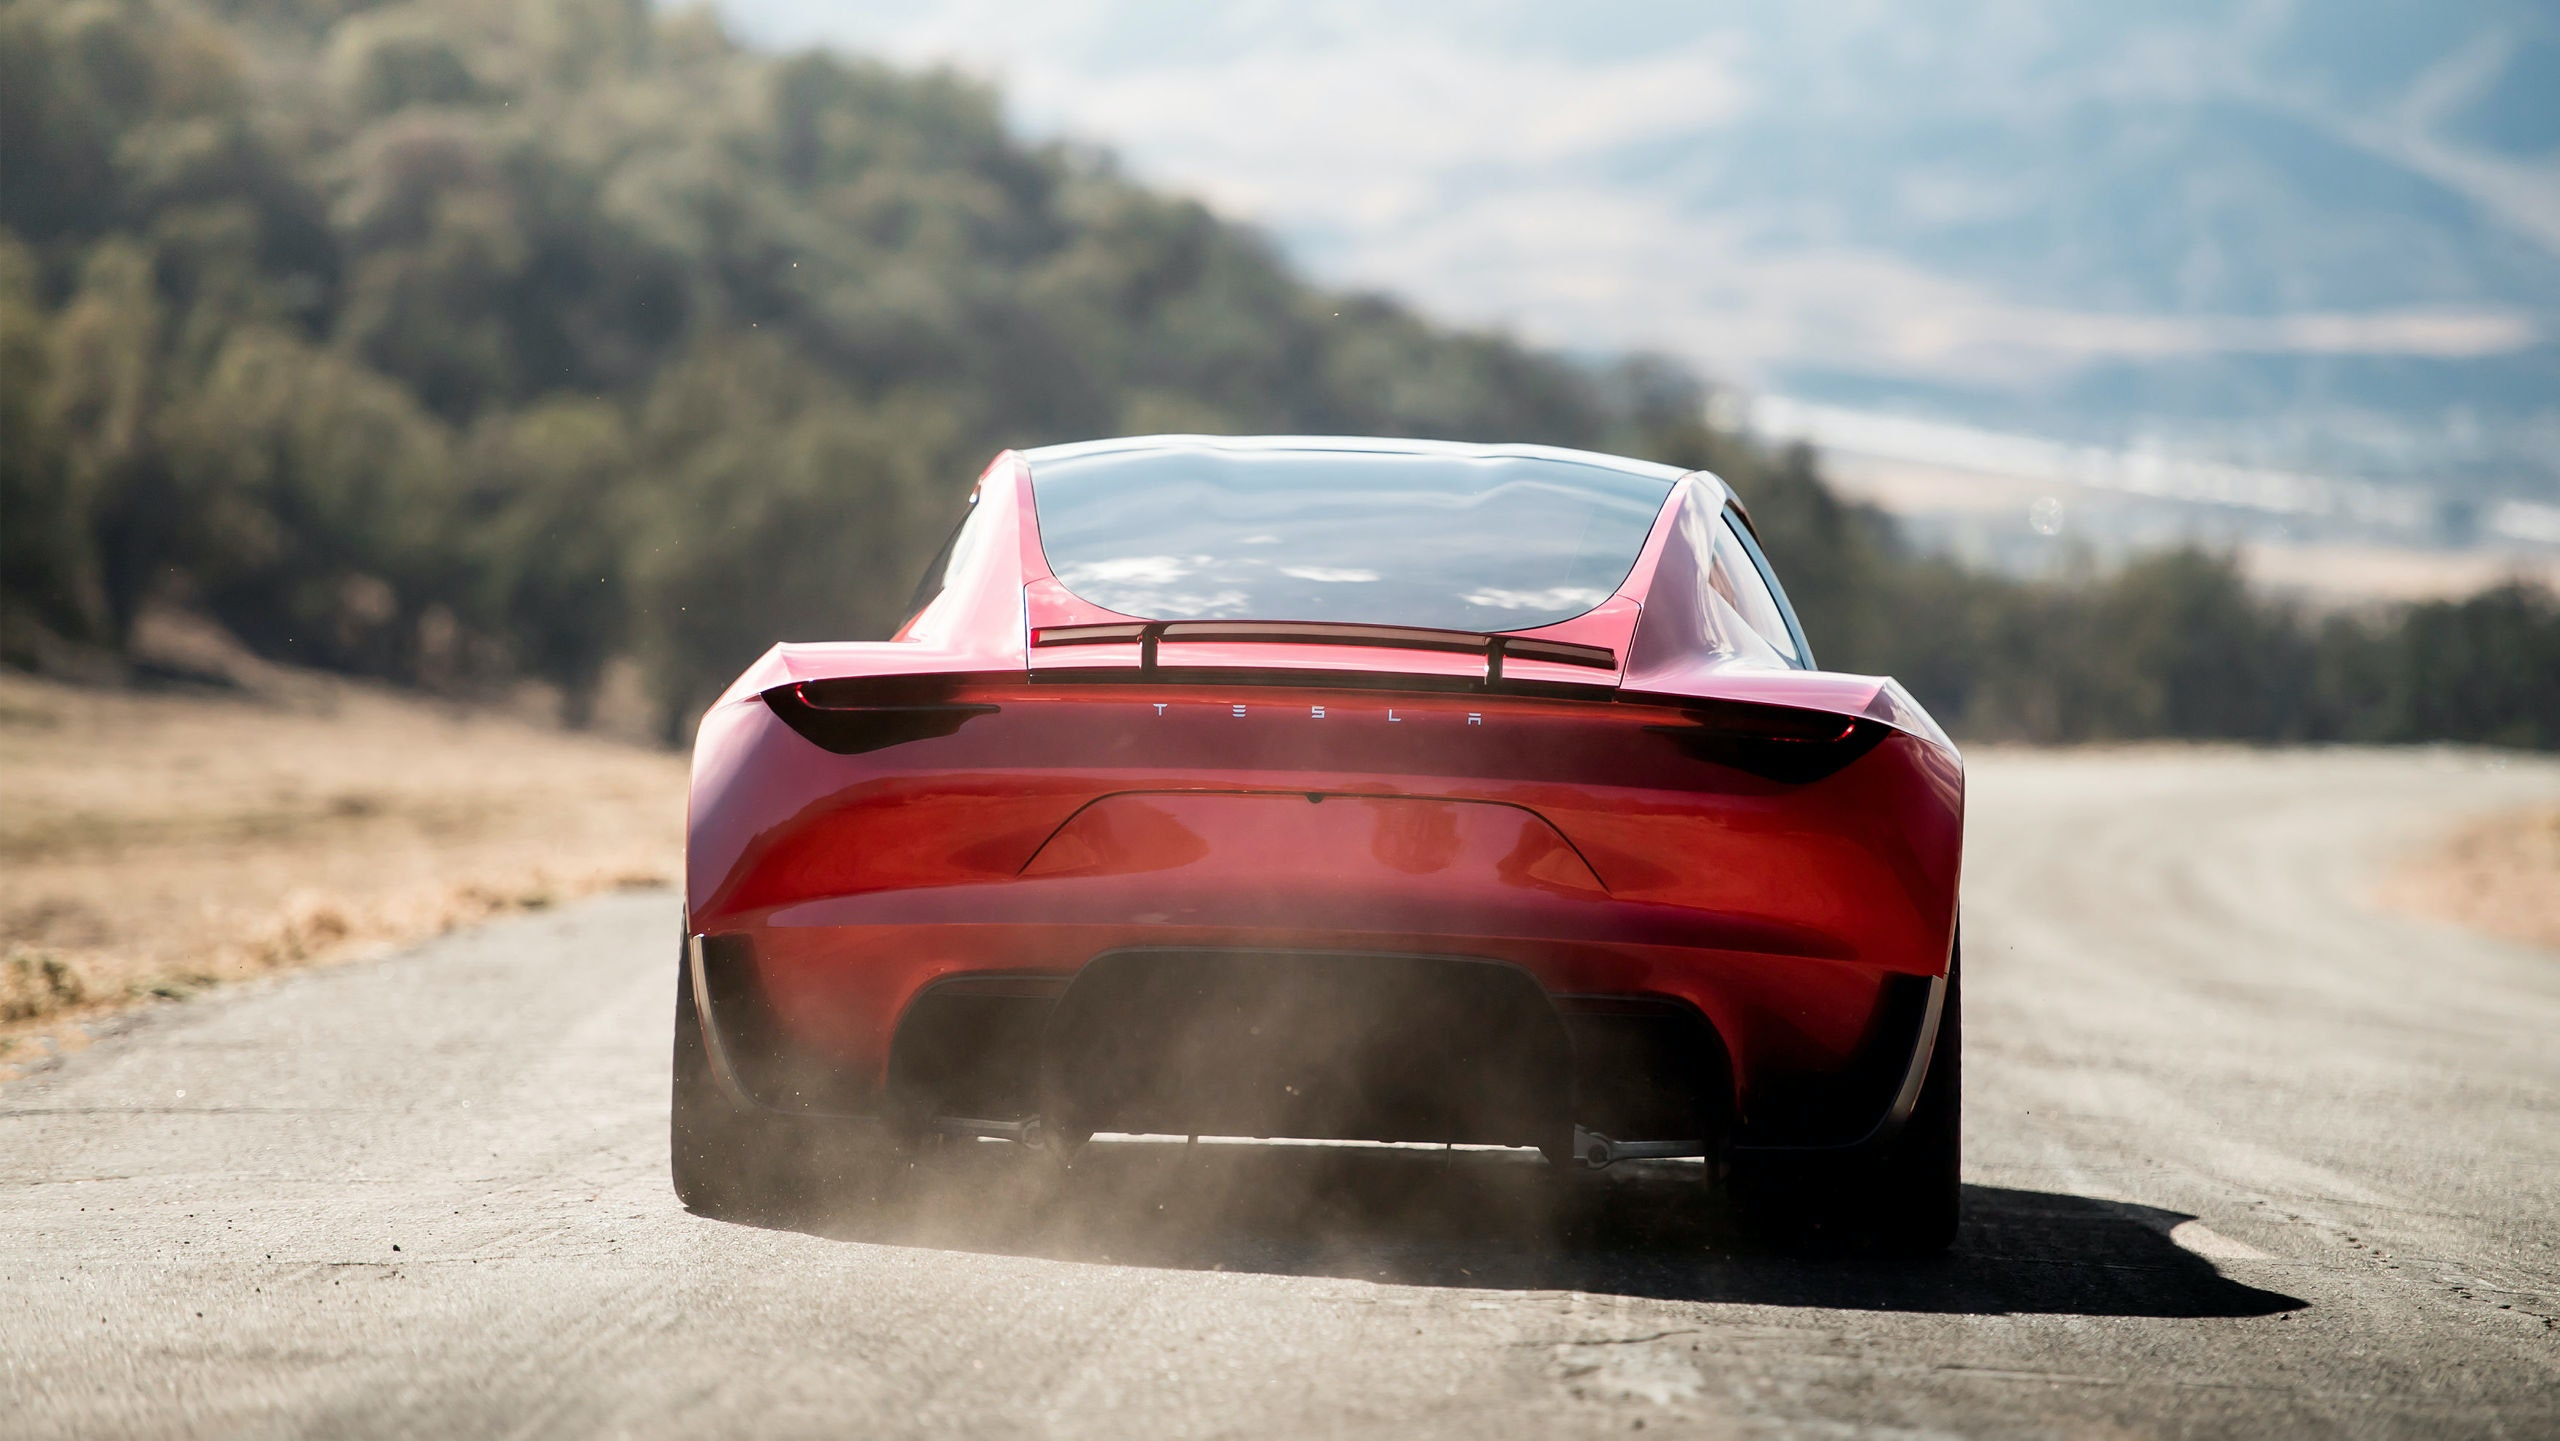 Tesla Roadster 2 is shown in this undated handout photo, during a presentation in Hawthorne, California, U.S., November 16, 2017. Tesla/Handout via REUTERS     ATTENTION EDITORS - THIS IMAGE WAS PROVIDED BY A THIRD PARTY. NO RESALES. NO ARCHIVES.